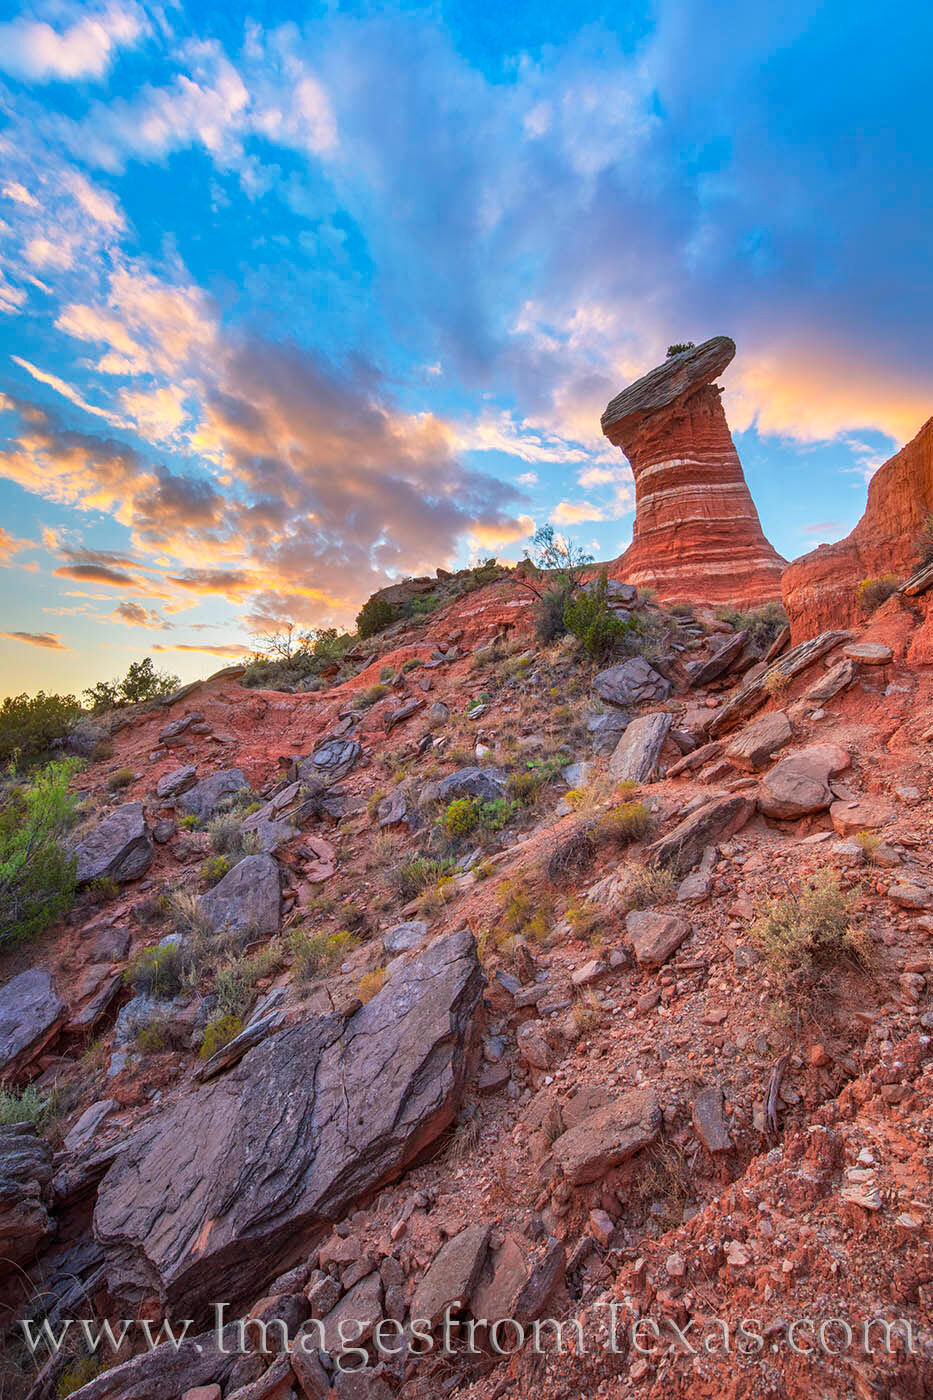 A ways down the GSL Trail in Palo Duro - and a bit off the beaten path - Red Star Hoodoo stands tall in the evening light. Though...